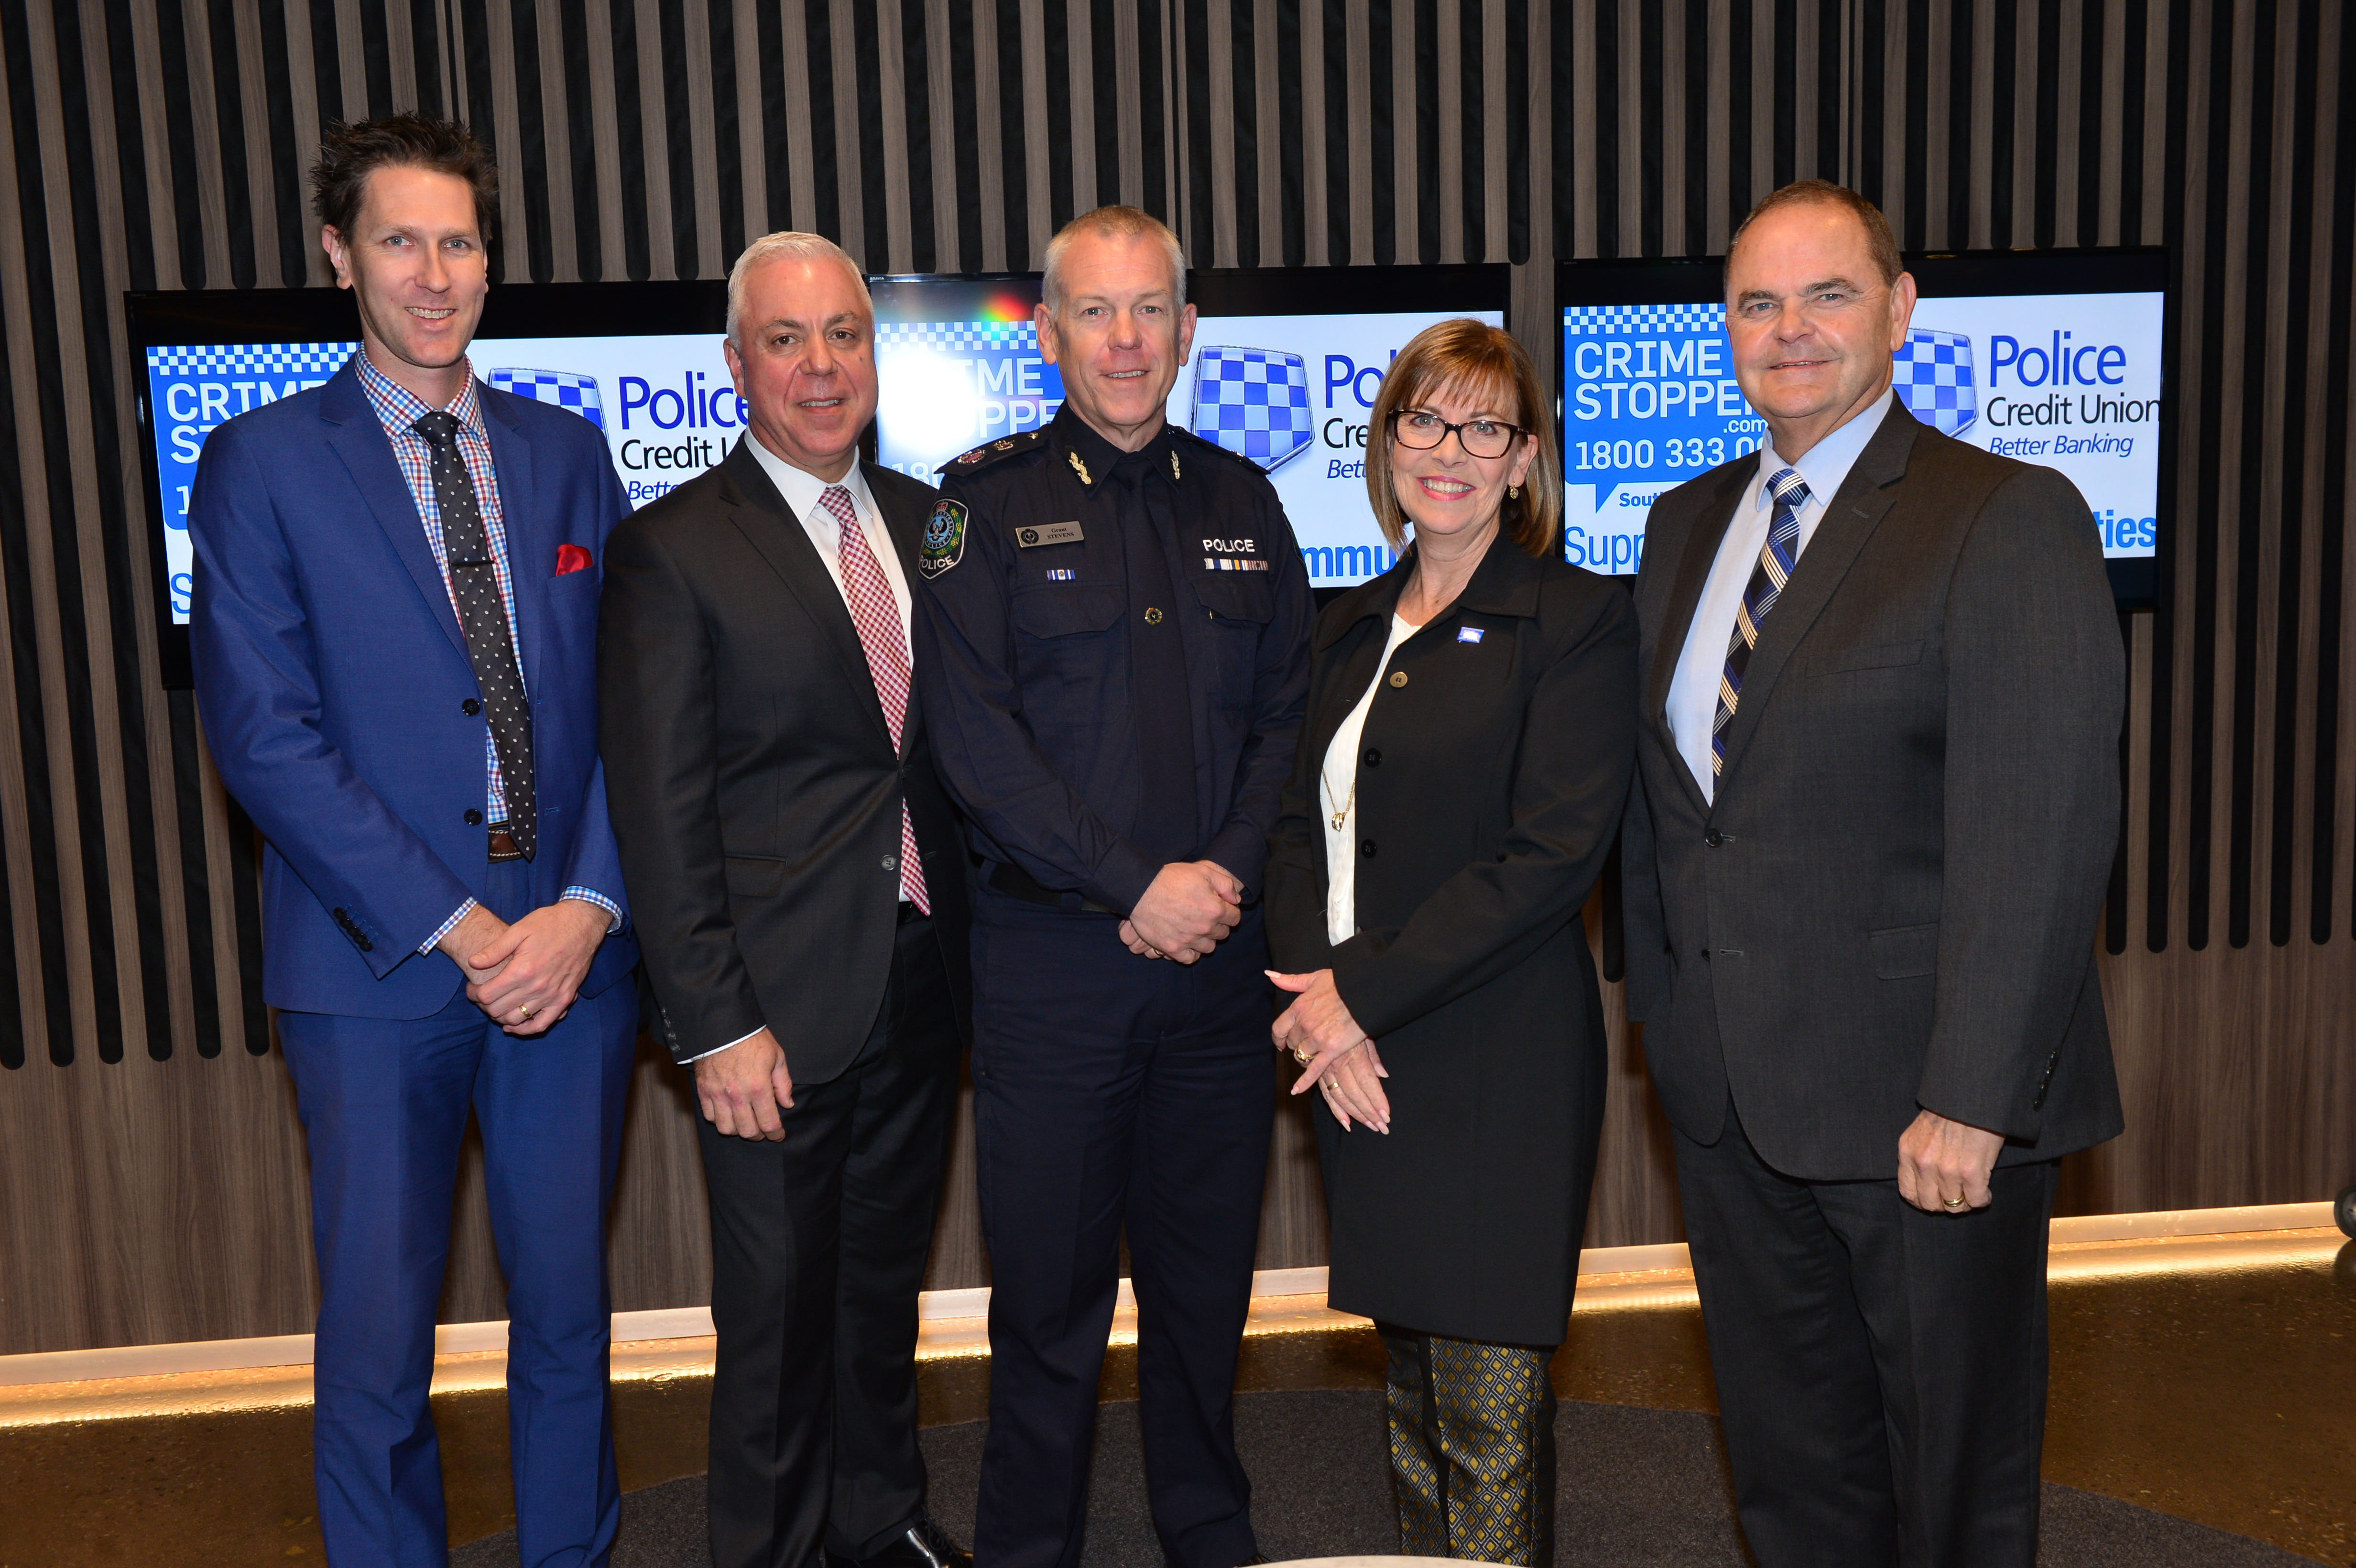 L-R ?????, Costa Anastasiou Chief Executive Officer PCU, Police Commisioner Grant Stevens , Sharon Hanlon Chair of Crime Stoppers and Alex Zimmerman Chairman of of PCU at the annoucment the Police Credit Union major sponsorship of Crime Stoppers at Channel 9 studios on Tuseday the 11th of July 2017.Picture Mark Brake Photography